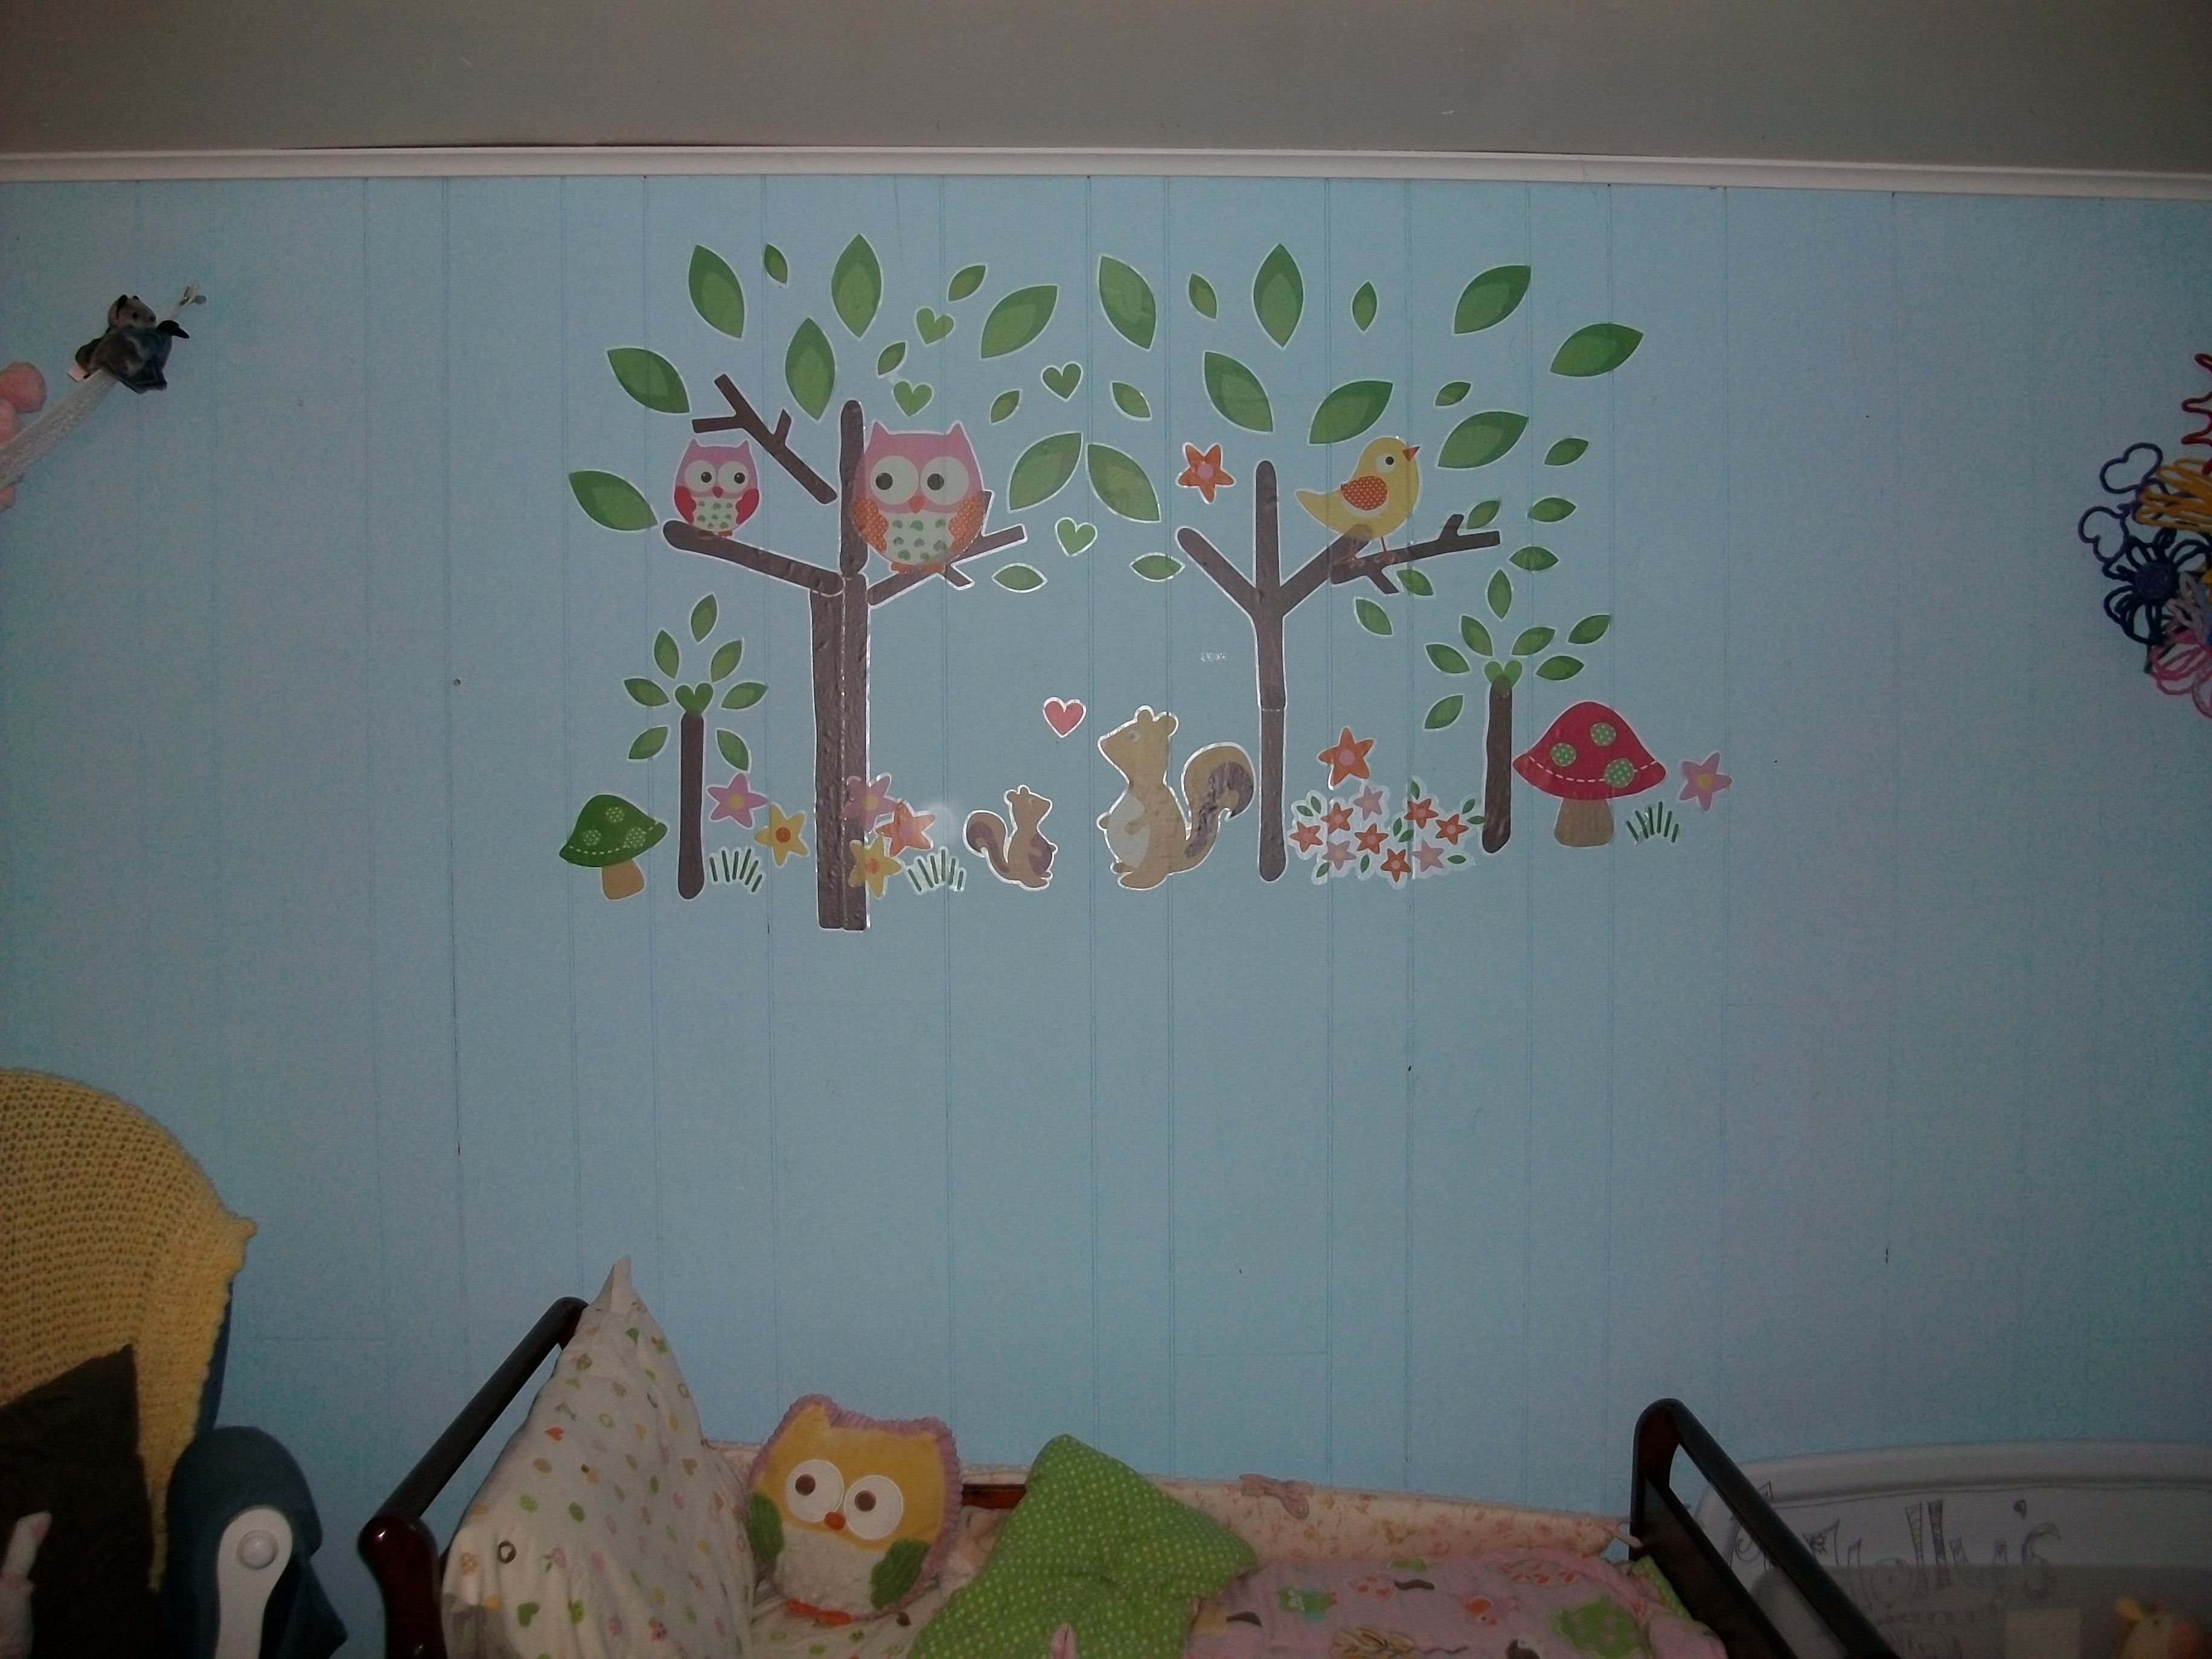 Target love and nature decals, I made my own scene above my daughter's toddler bed.